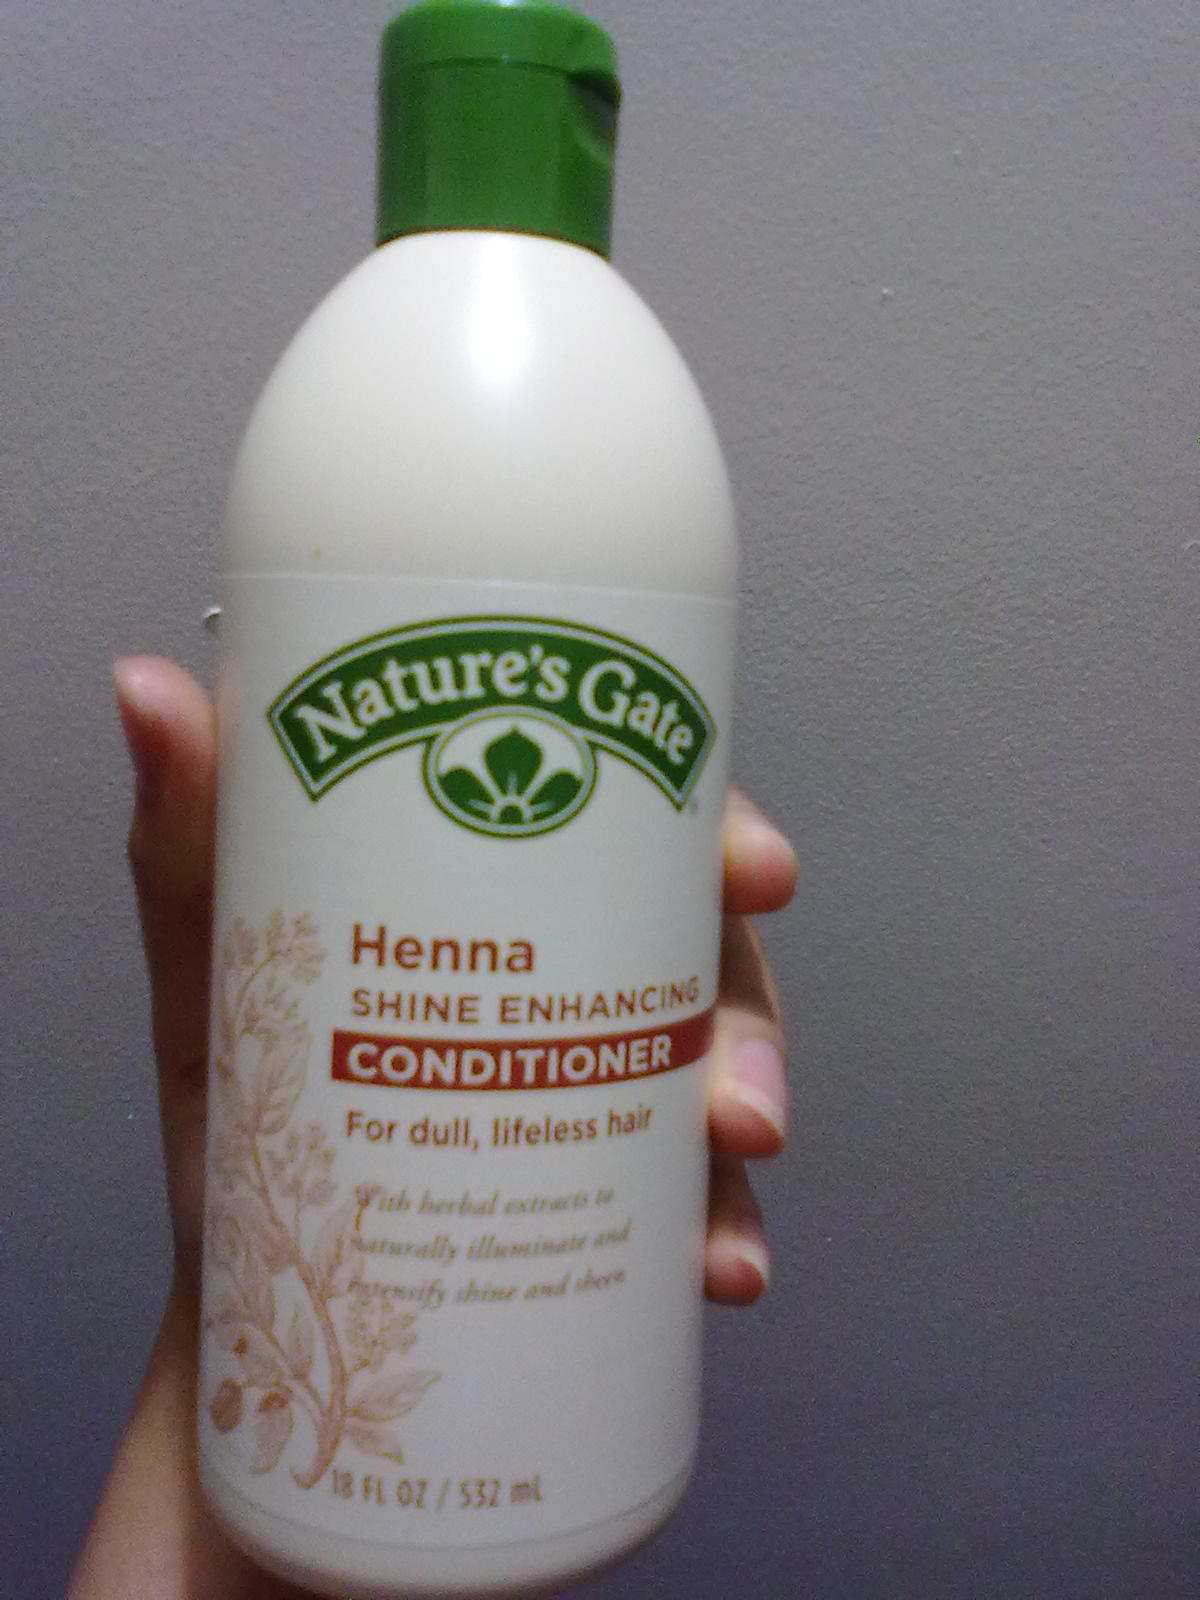 Mehndi For Conditioning Hair : The autumn bleu review hair product nature s gate